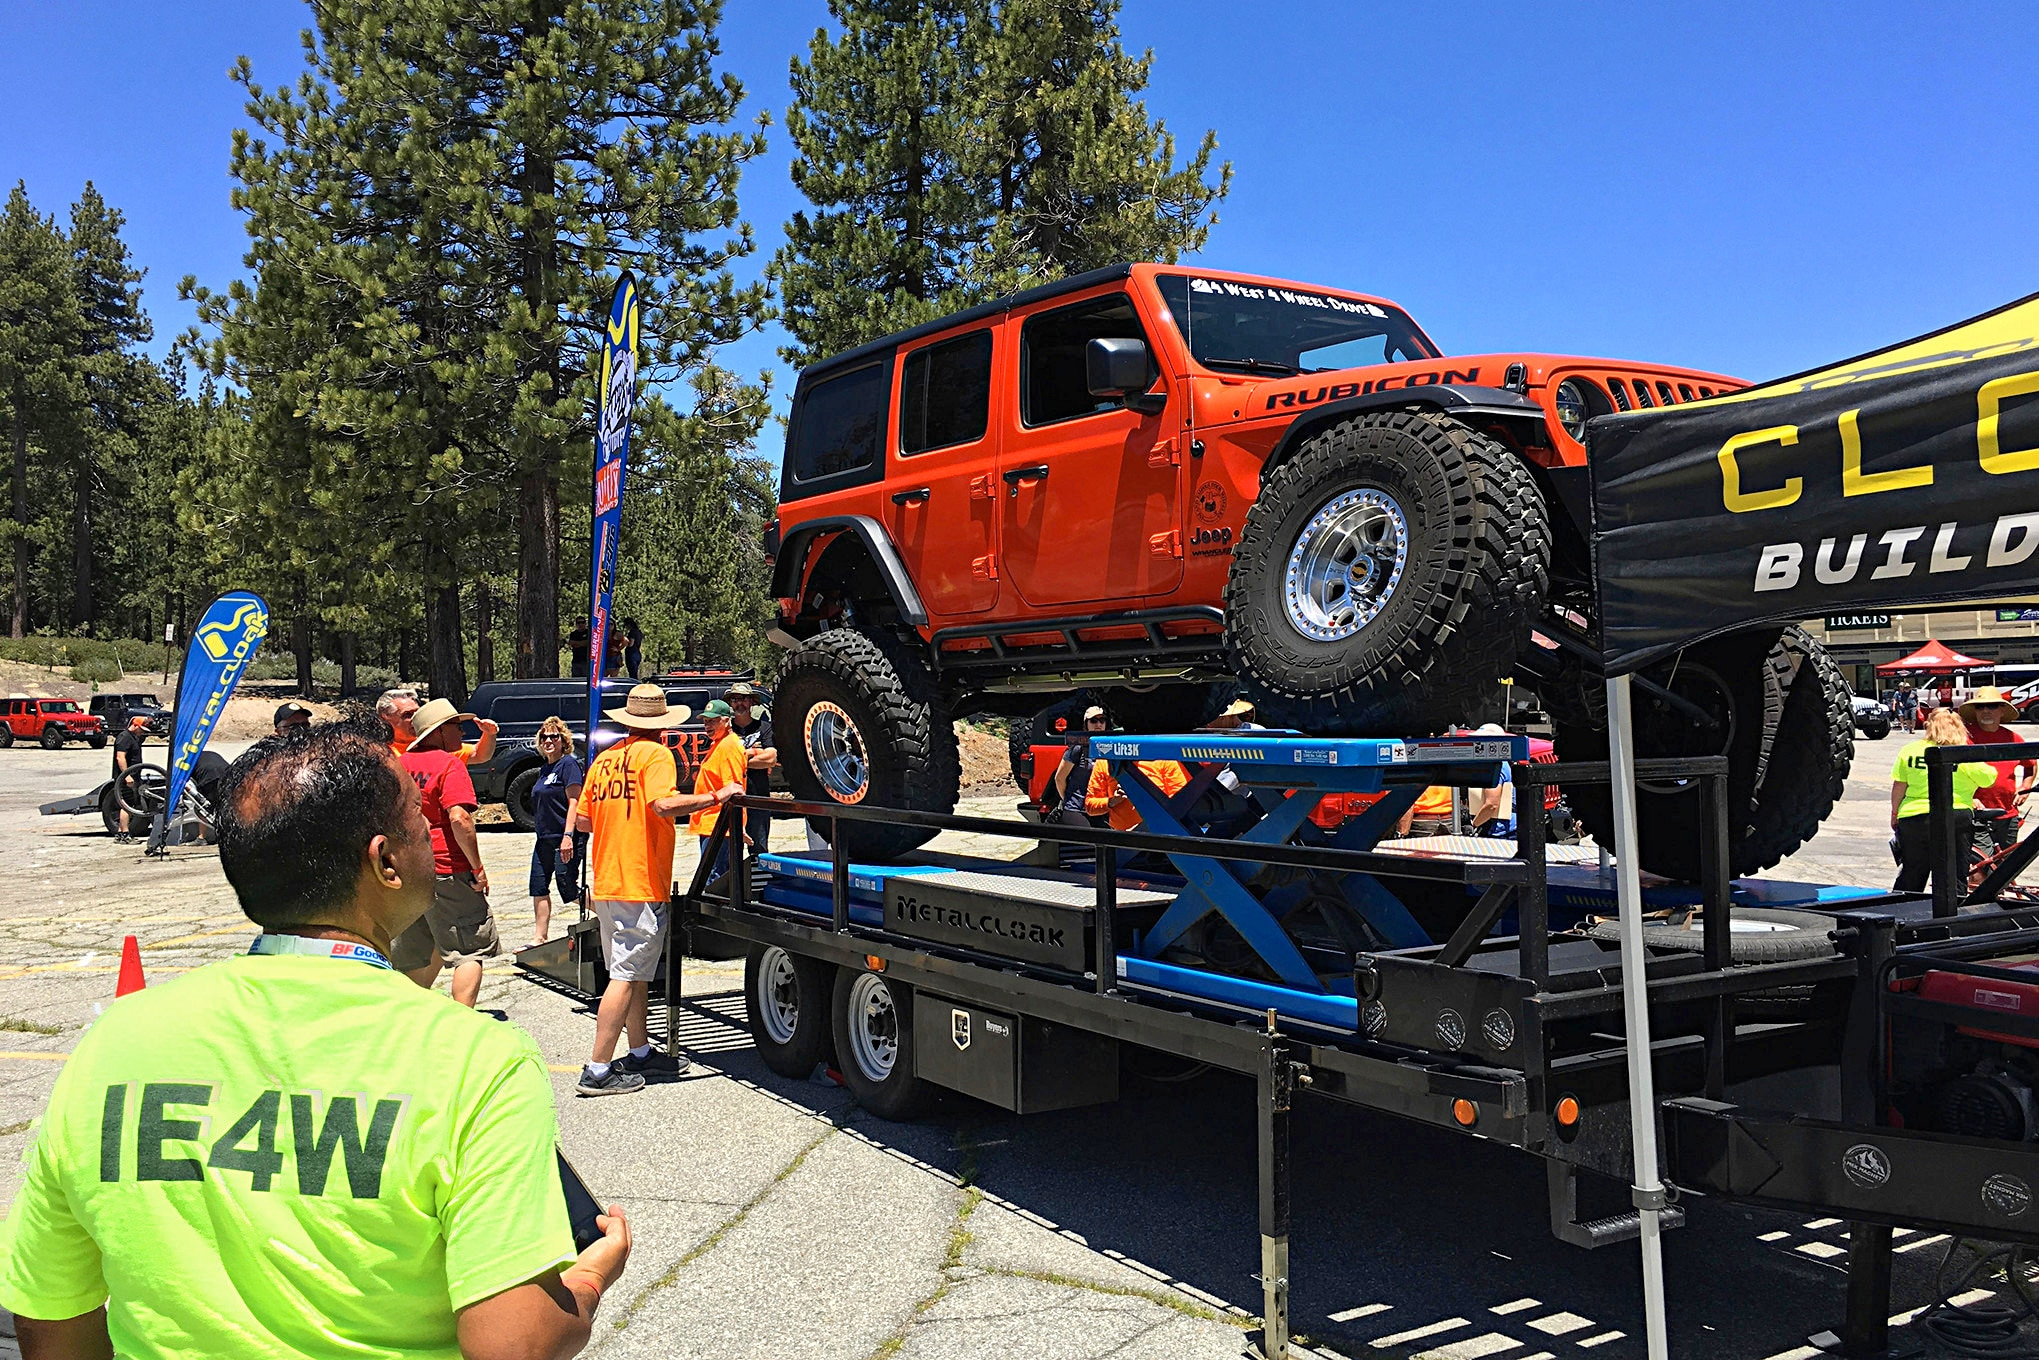 055 jeep event big bear forest fest 2019 inland empire